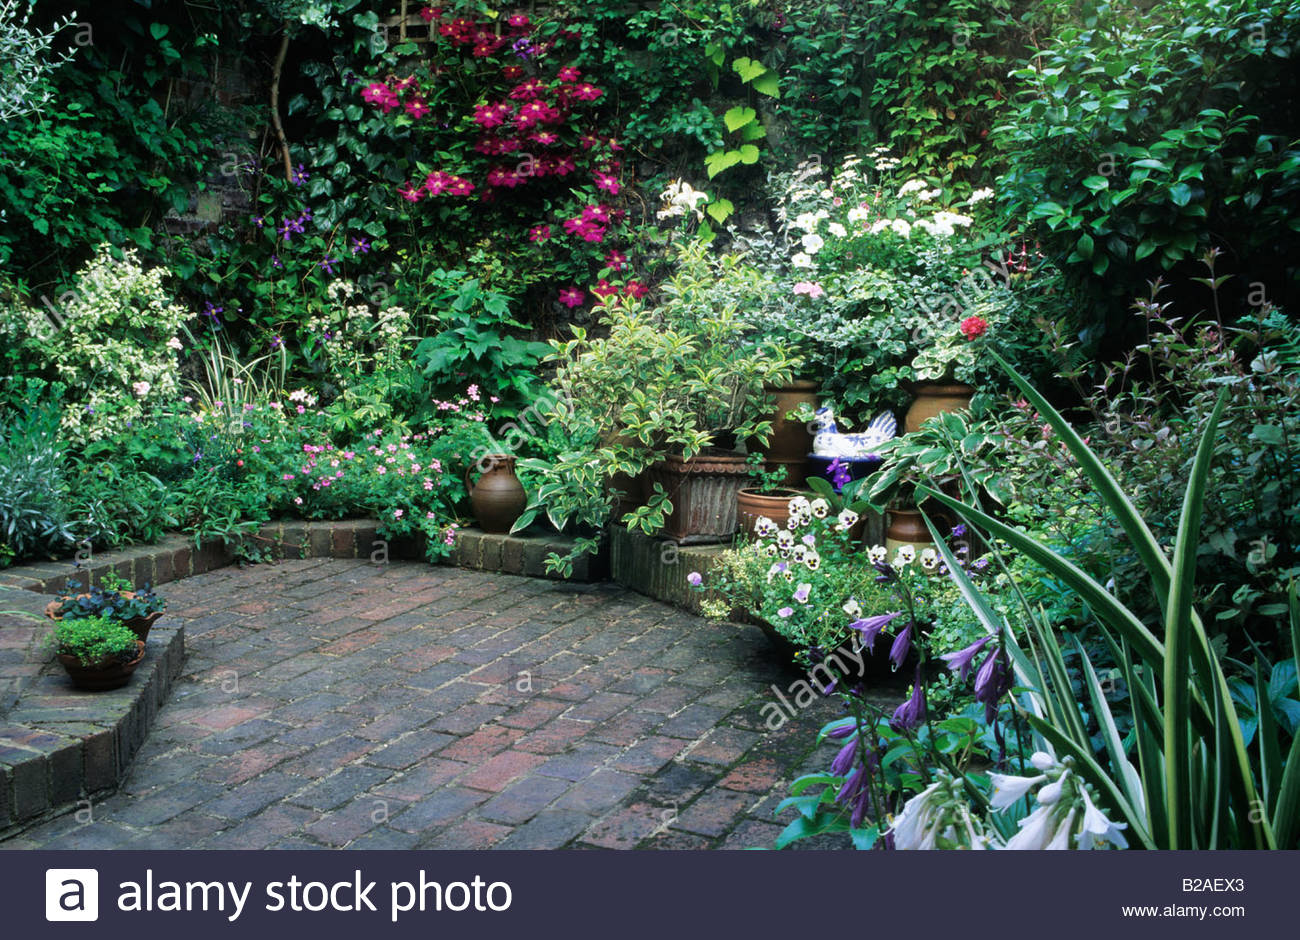 brighton small town garden patio with brick floor overview of narrow bed and area for potted plants - Patio Town